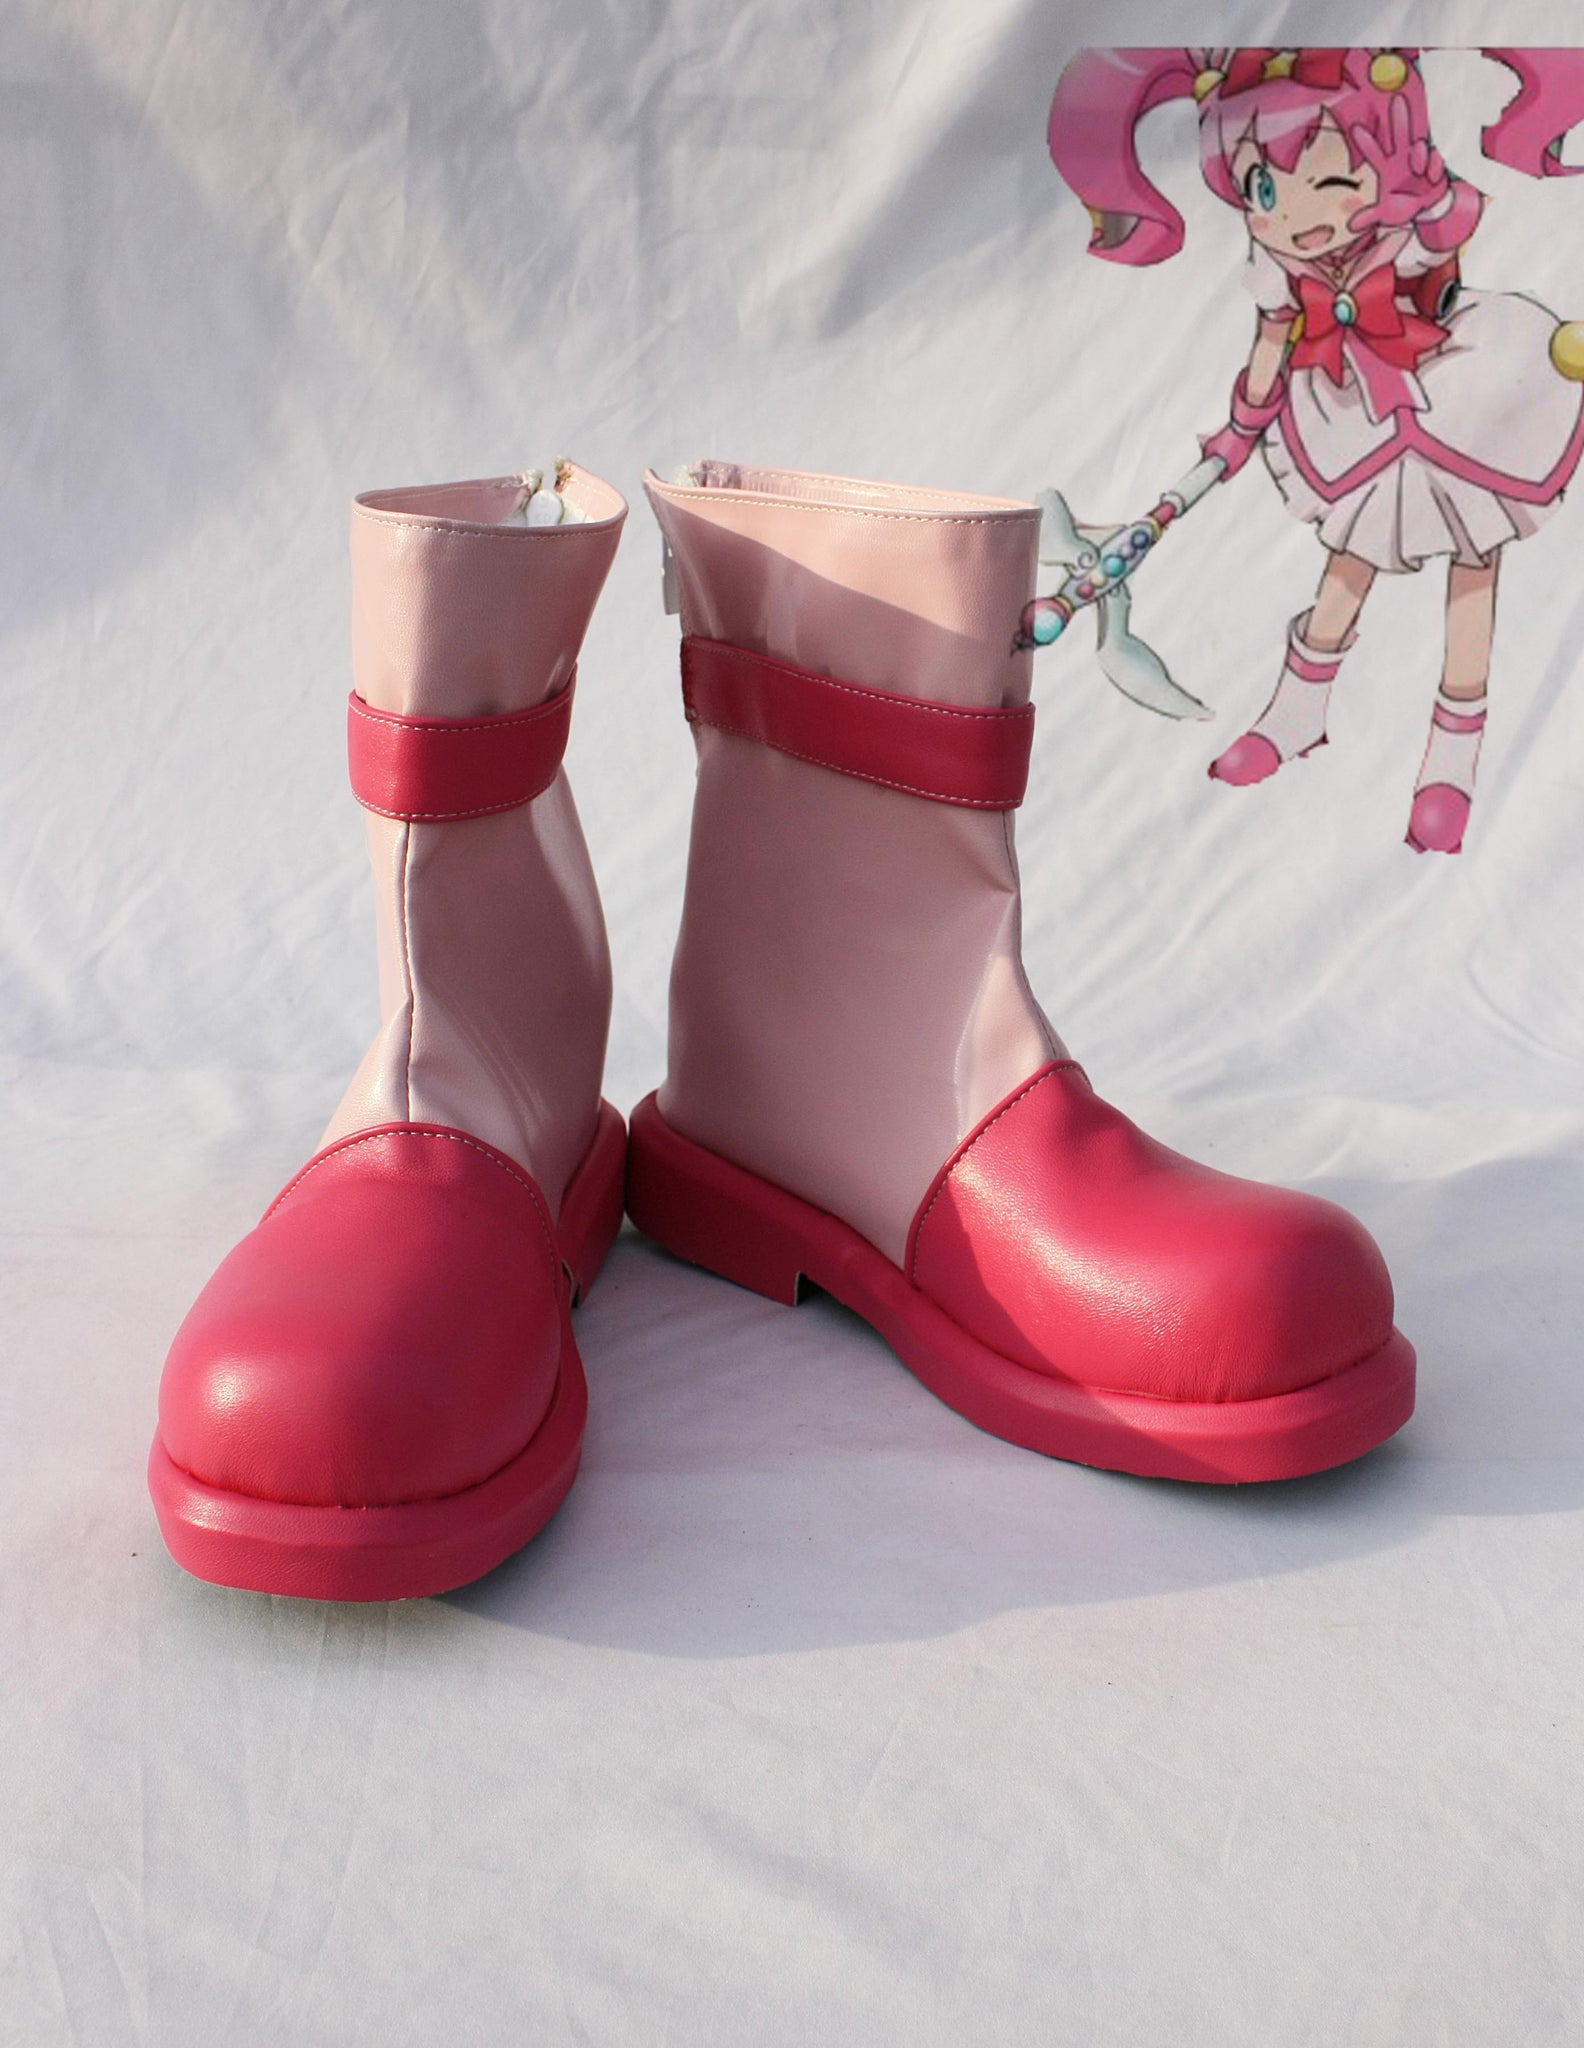 Oreimo Meruru Cosplay Boots Shoes